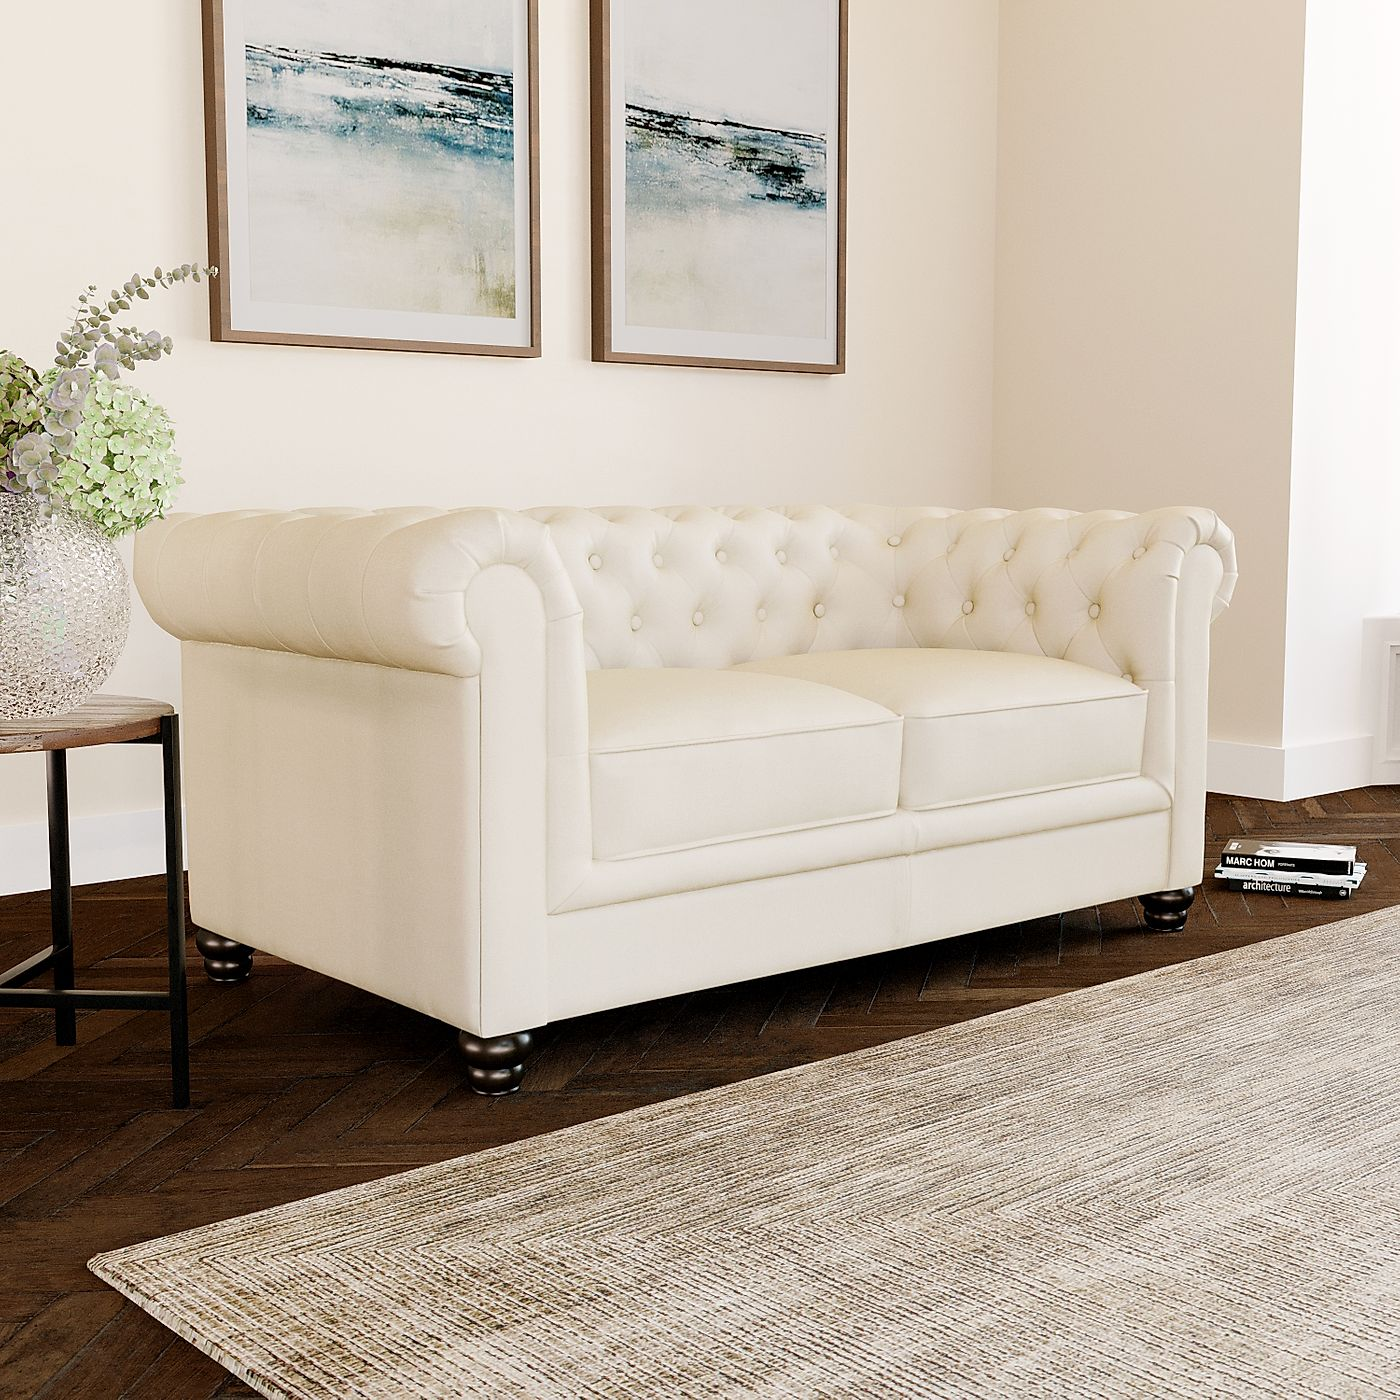 Amazing Hampton Ivory Leather 2 Seater Chesterfield Sofa Pabps2019 Chair Design Images Pabps2019Com